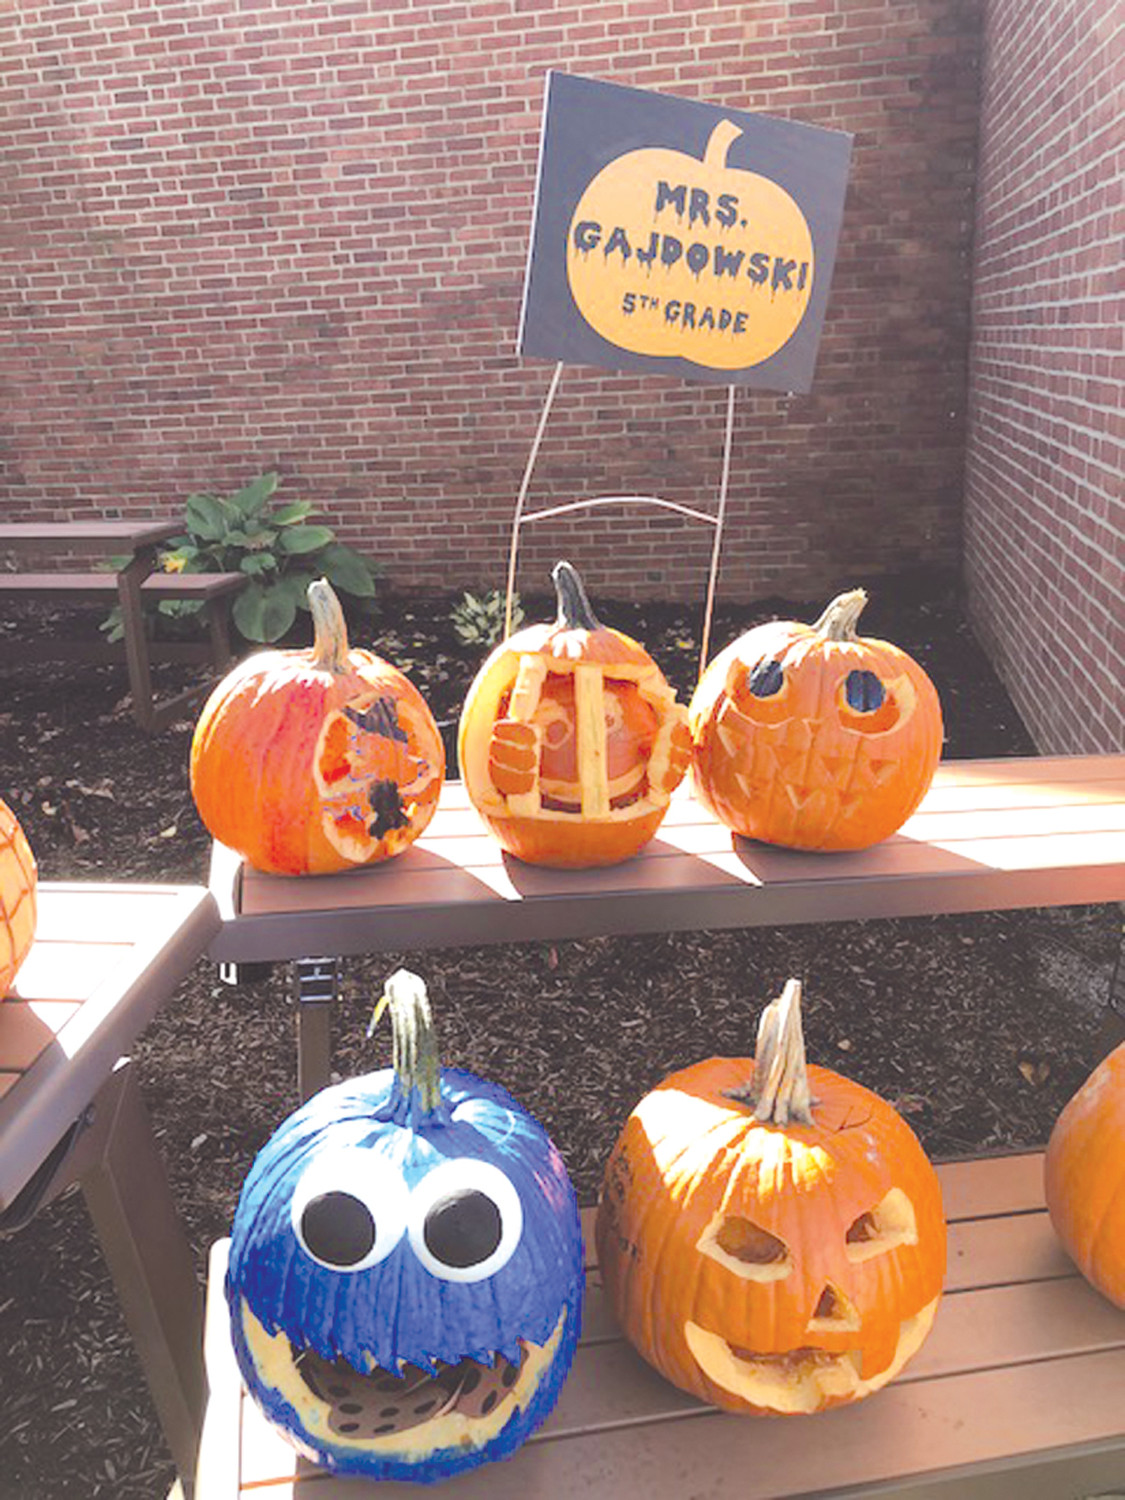 CLASSIC CARVINGS: One of the highlights of Winsor Hill School's annual Harvest Night is the always-creative carving of pumpkins.